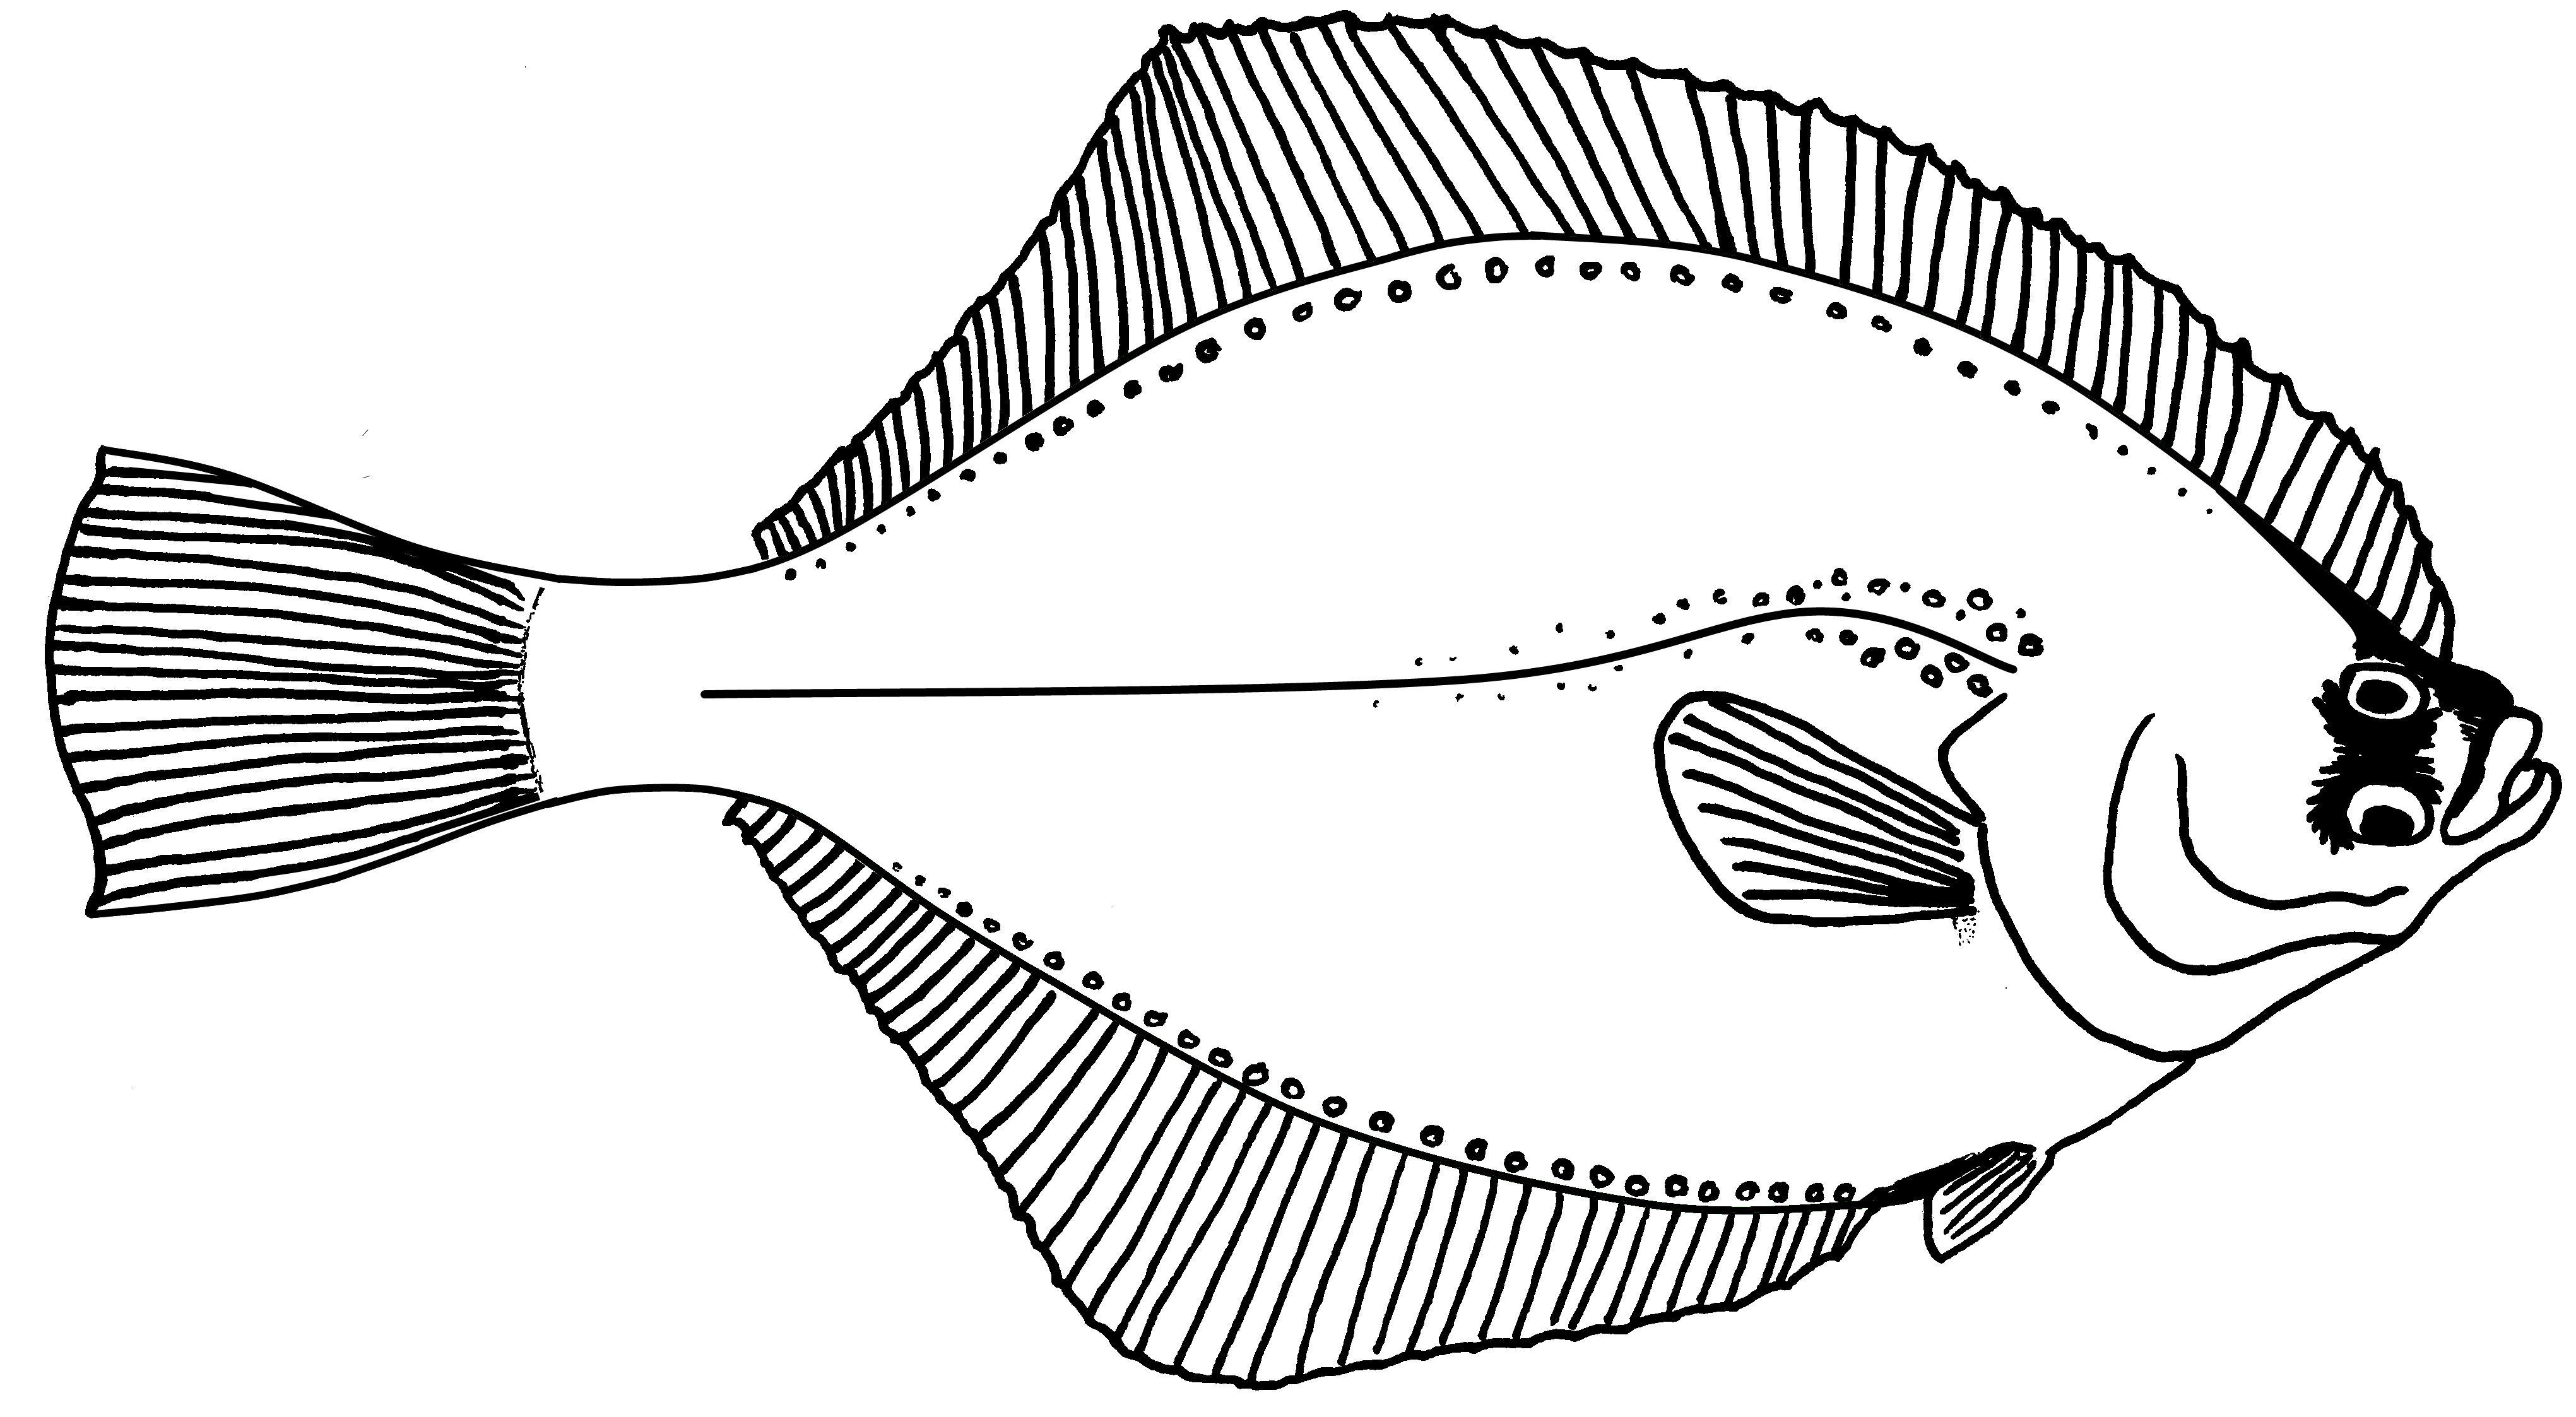 Flounder drawing